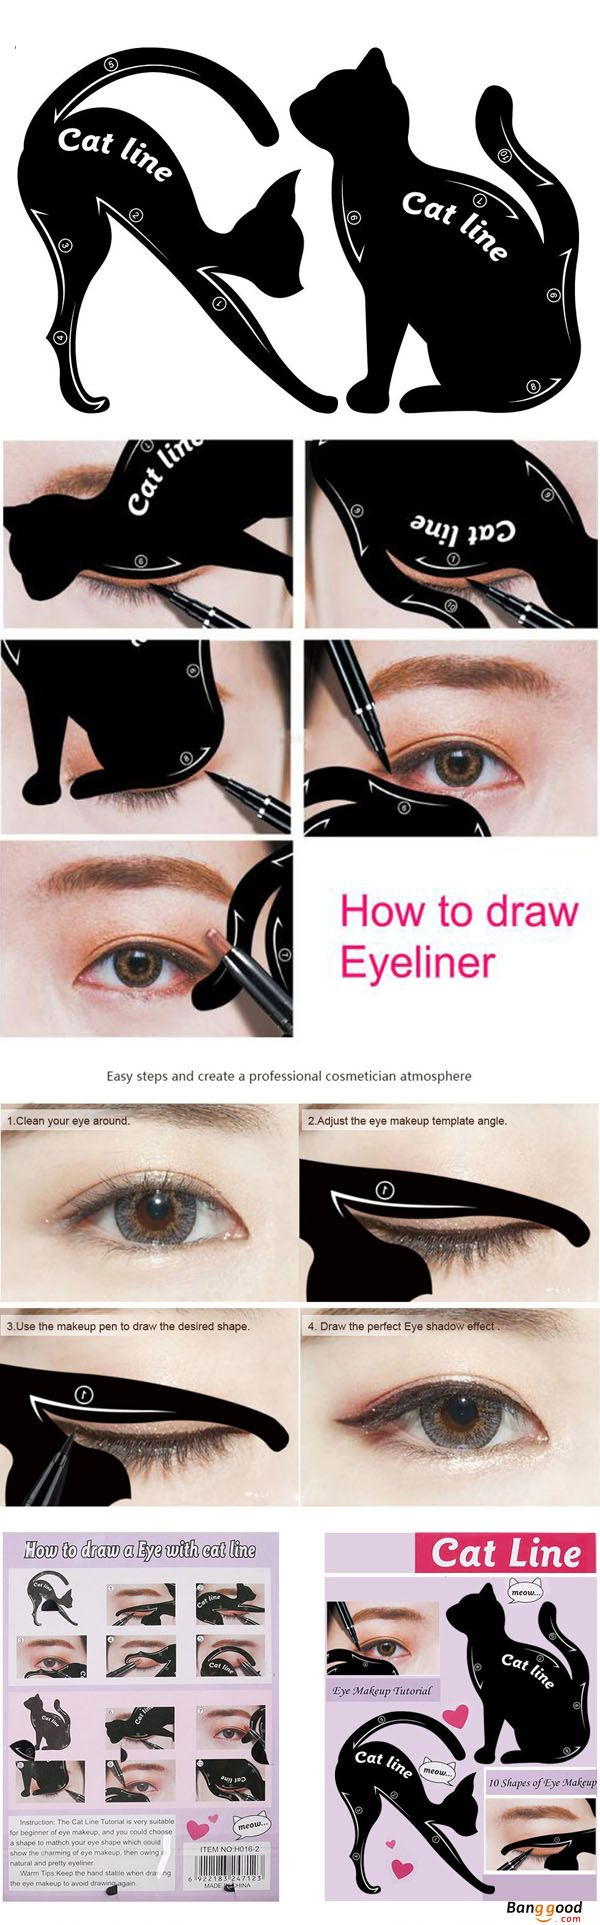 US$5.59 + Free shipping. Learn how to draw eyeliner. Cat Eye Liner Makeup Tool will help you. Find more.